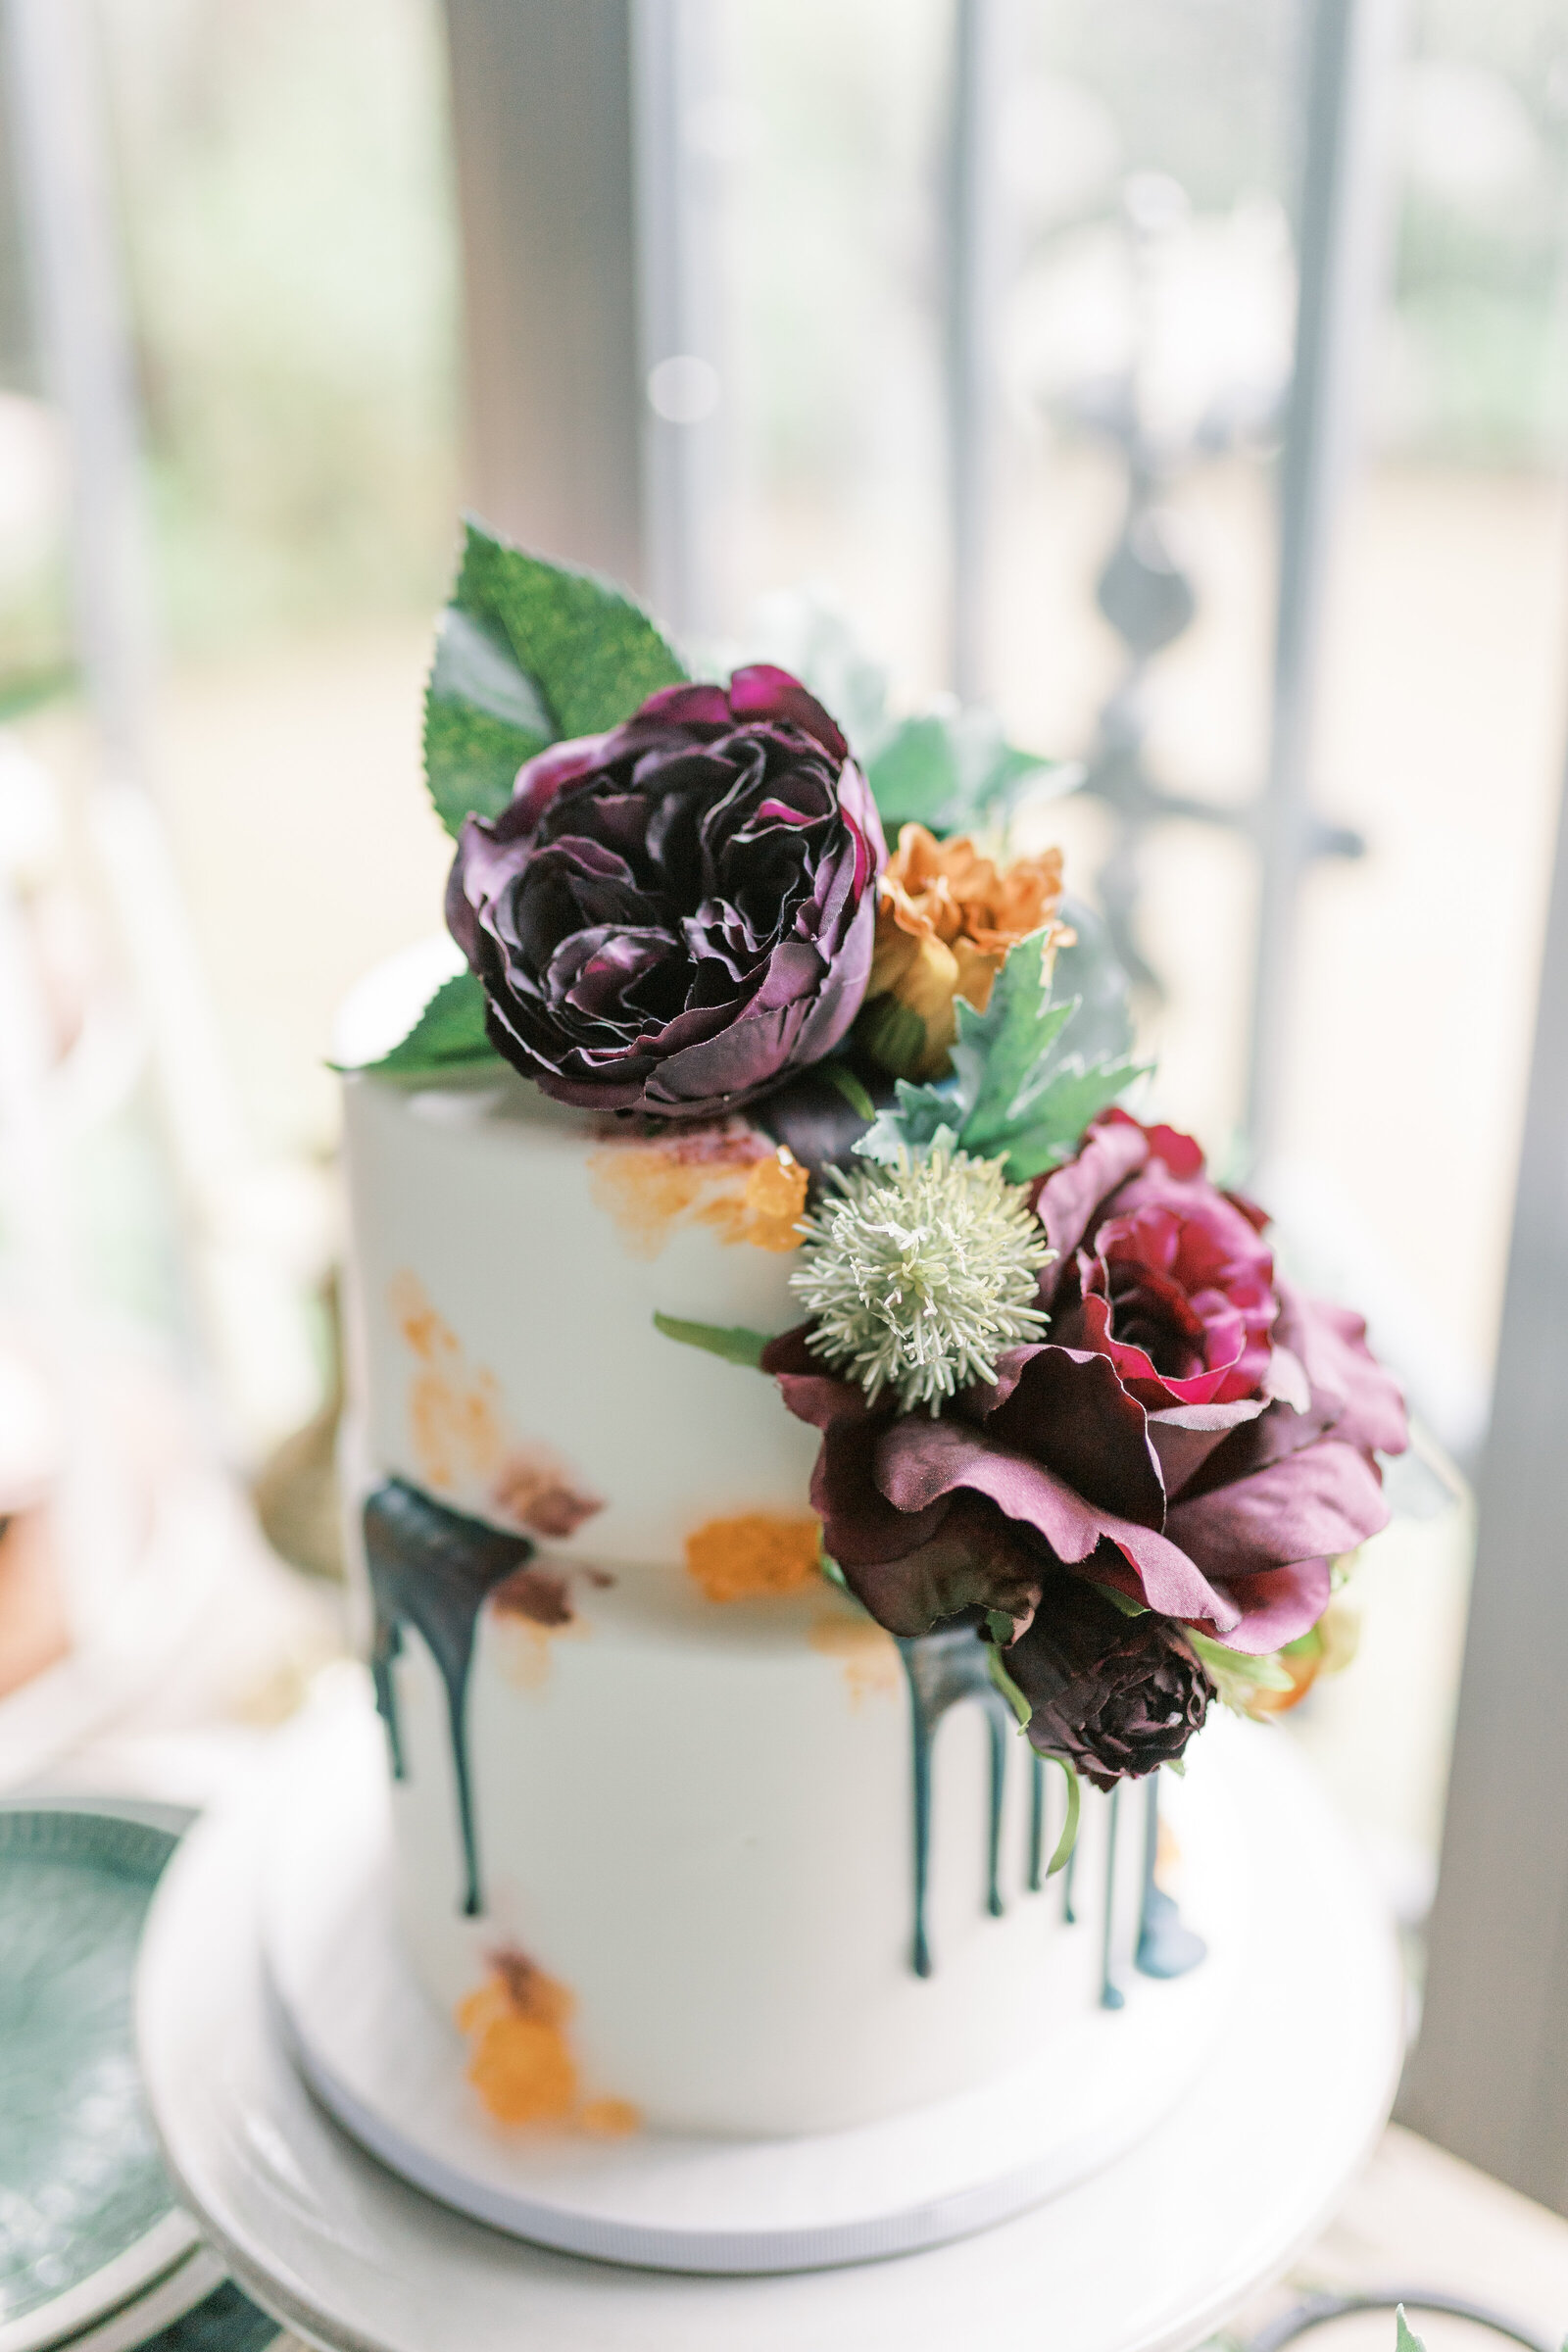 White wedding cake with dark purple flowers and orange accents